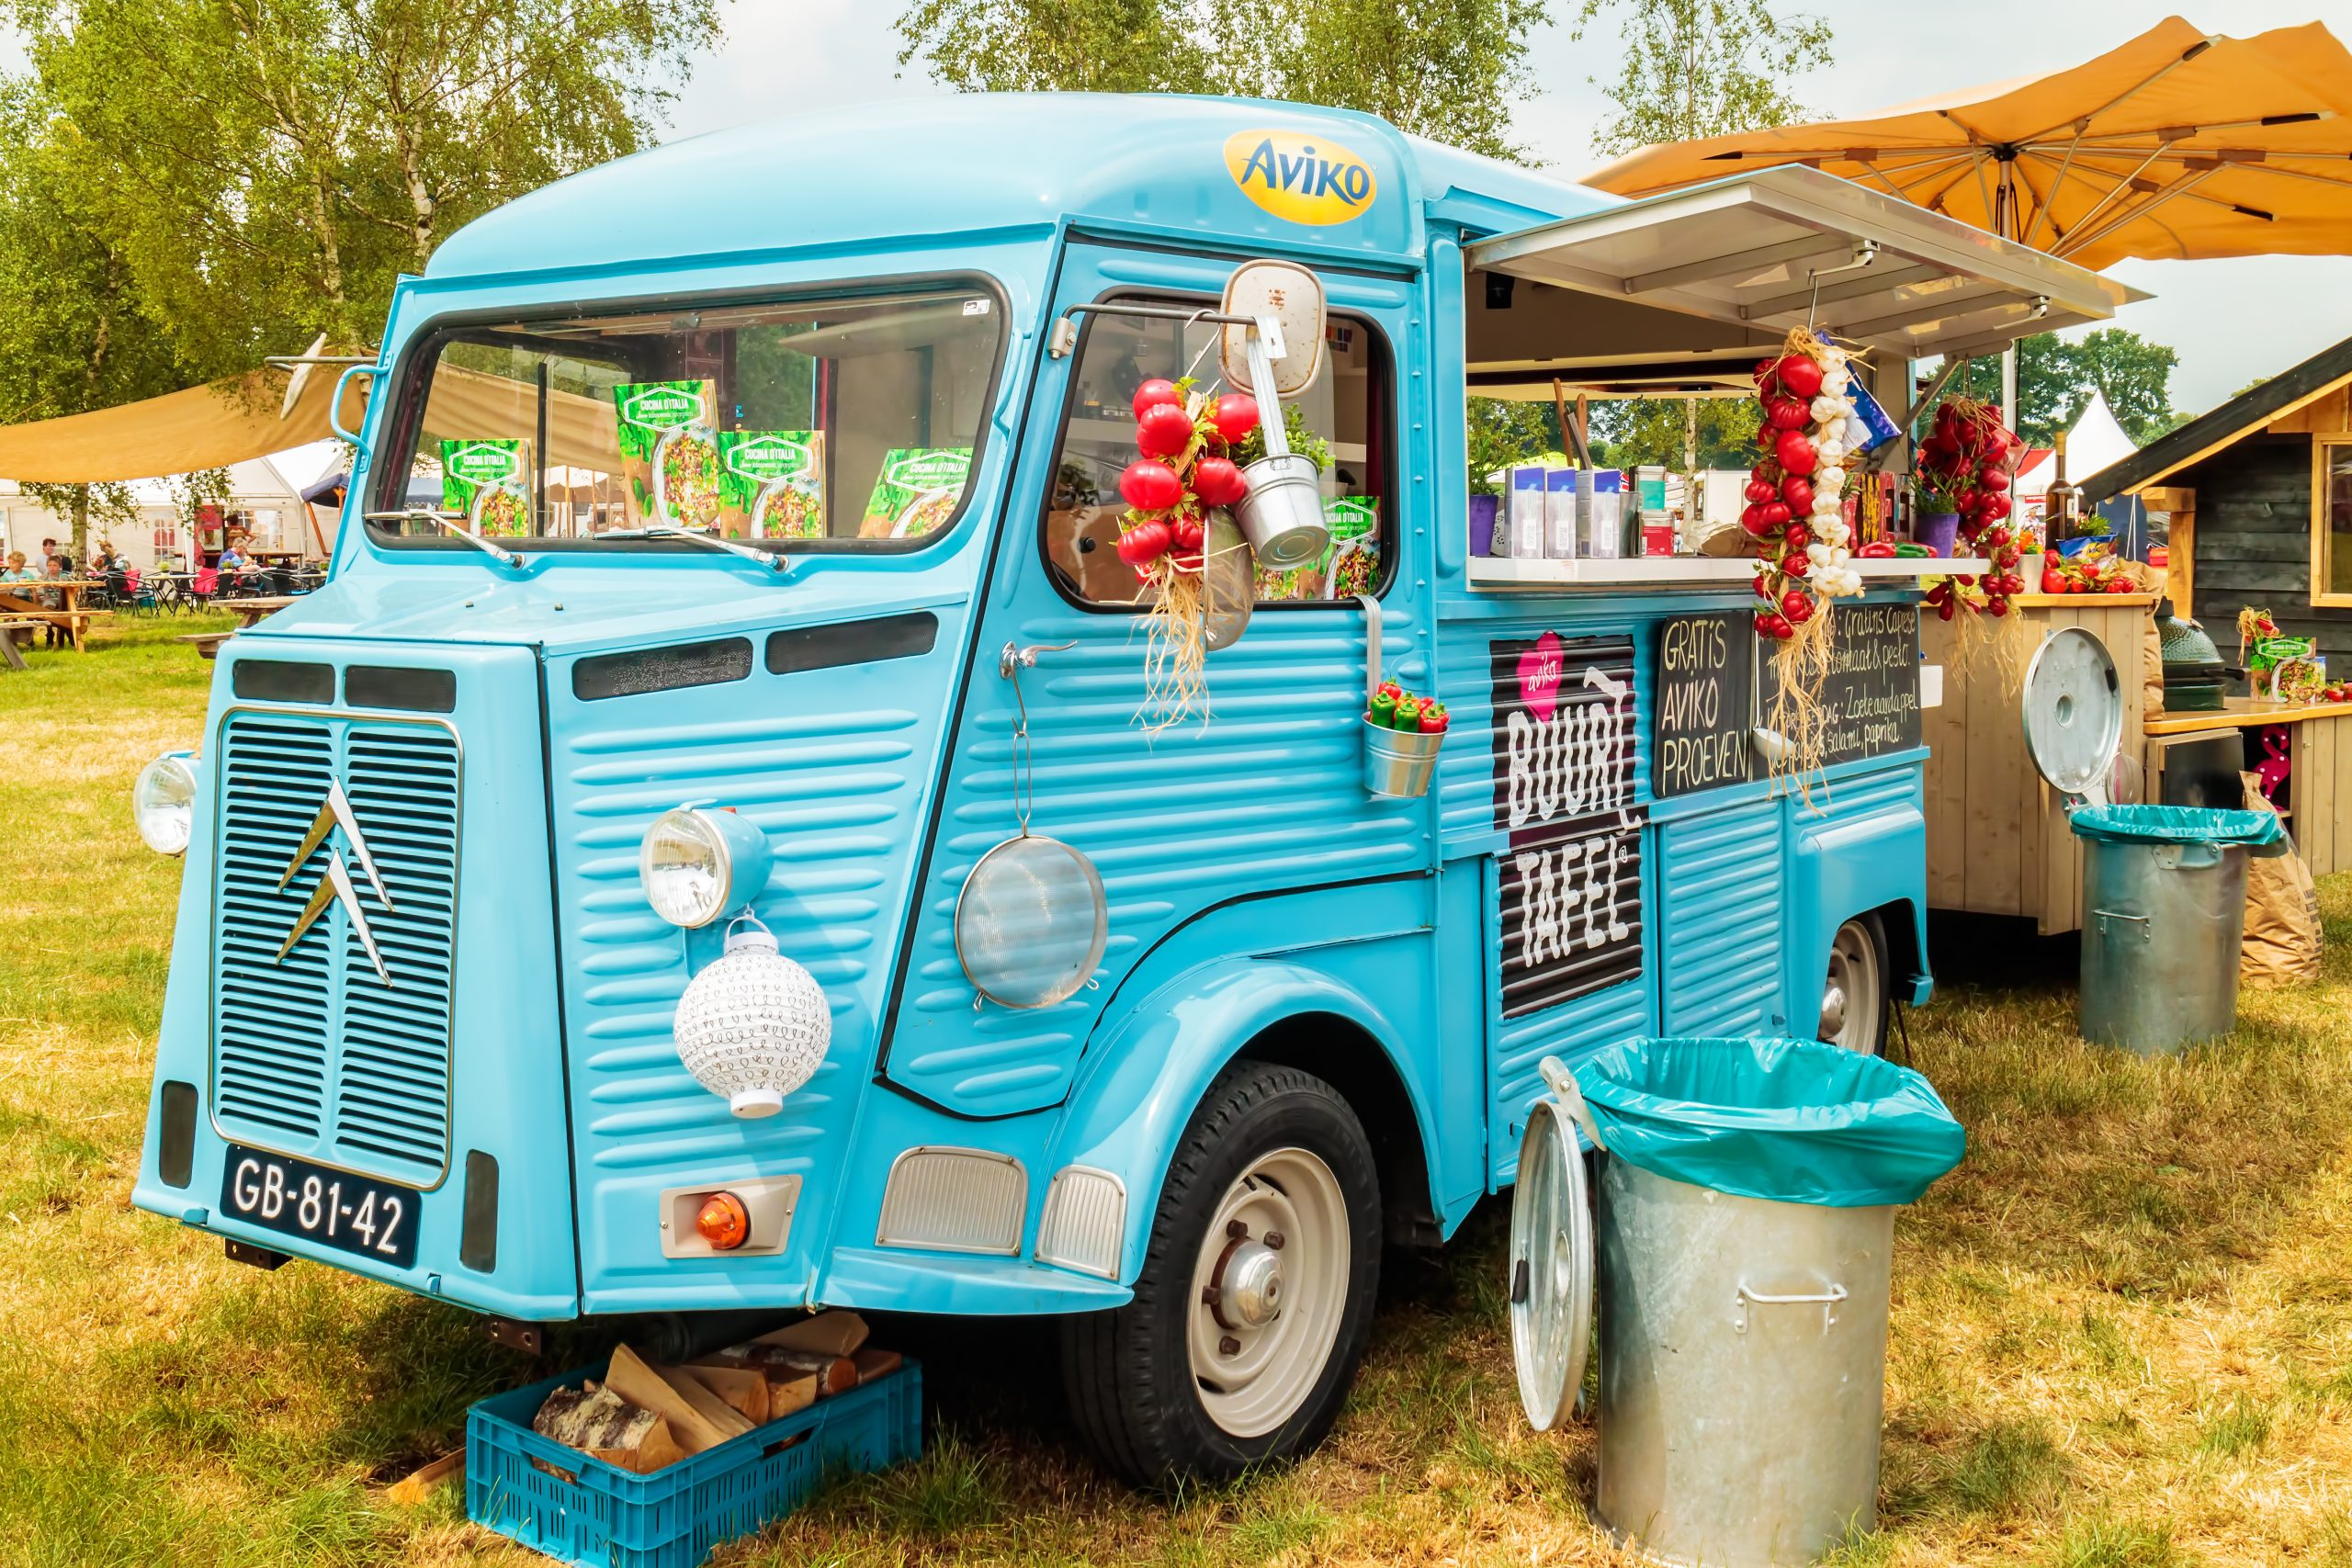 AALTEN, THE NETHERLANDS - JUNE 26, 2017: Vintage blue food truck on a country fair in Aalten, The Netherlands